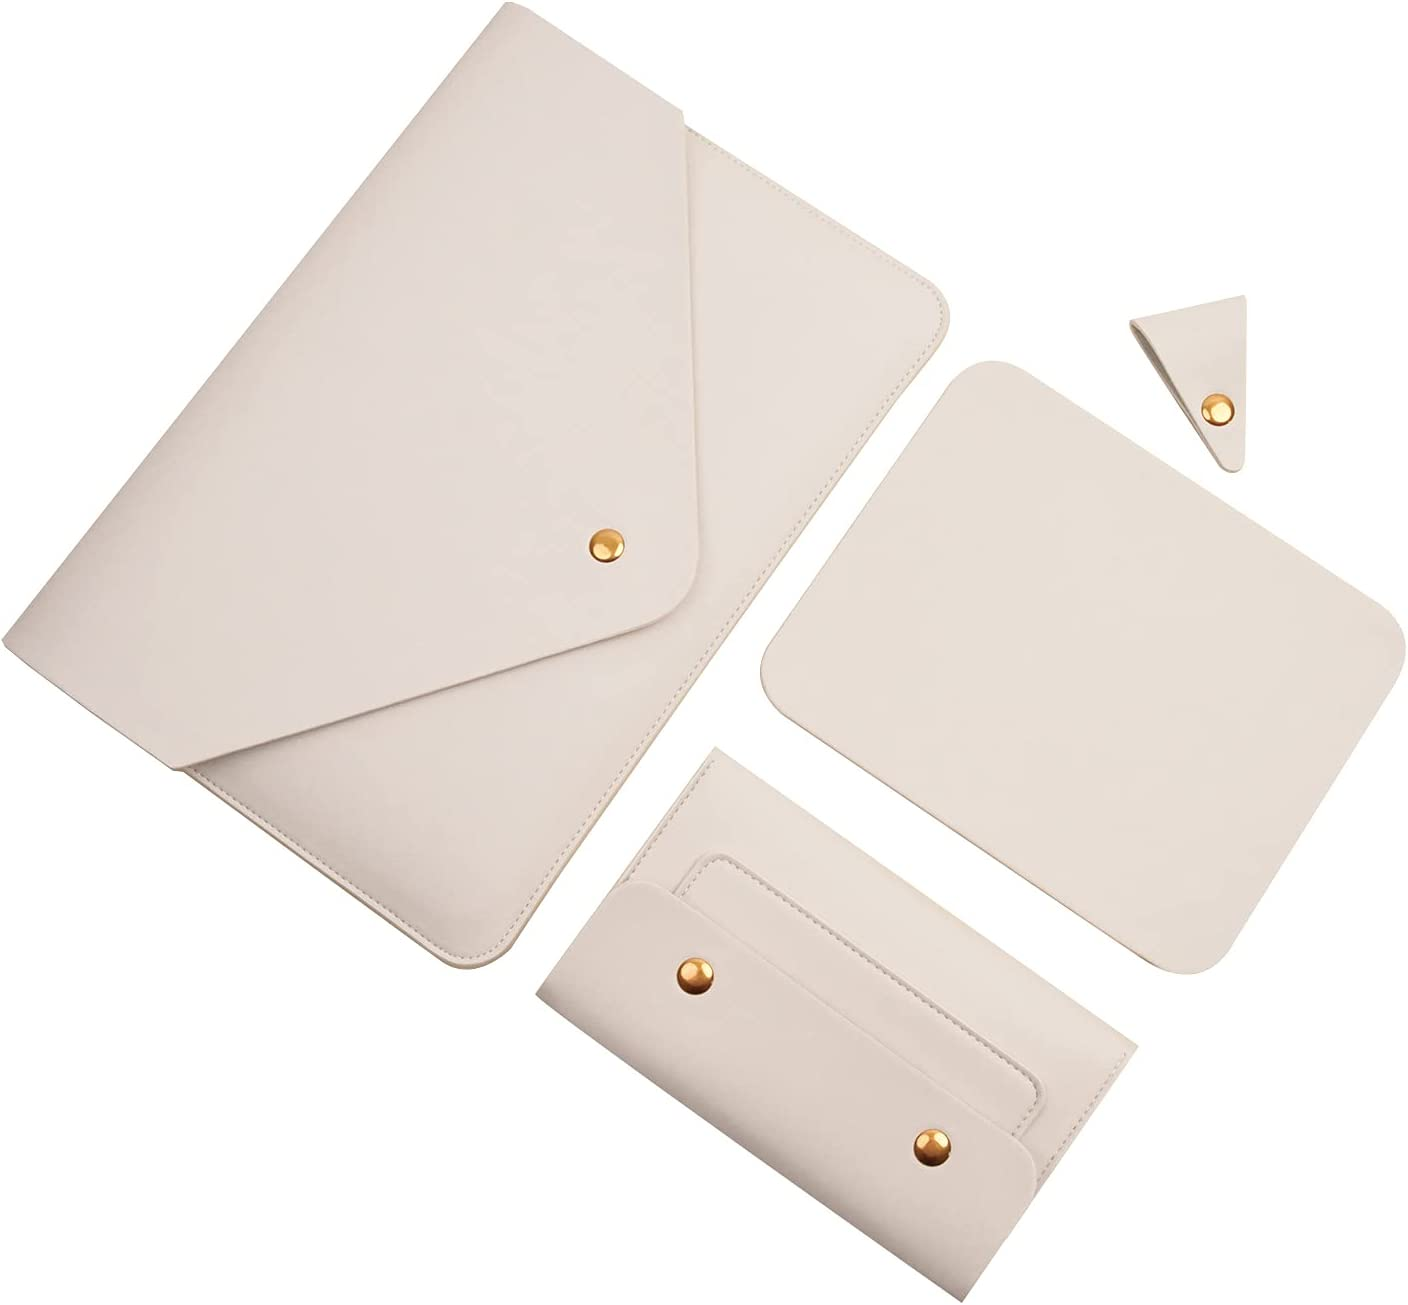 """Benfan Laptop Sleeve 14 Inch Compatible with Surface Laptop 13.5/ Thinkpad X1 Carbon 14"""" /Lenovo Yoga 900/910/920 14"""" with Small Pouch, Mouse Pad and Cord Organizer, Color White"""